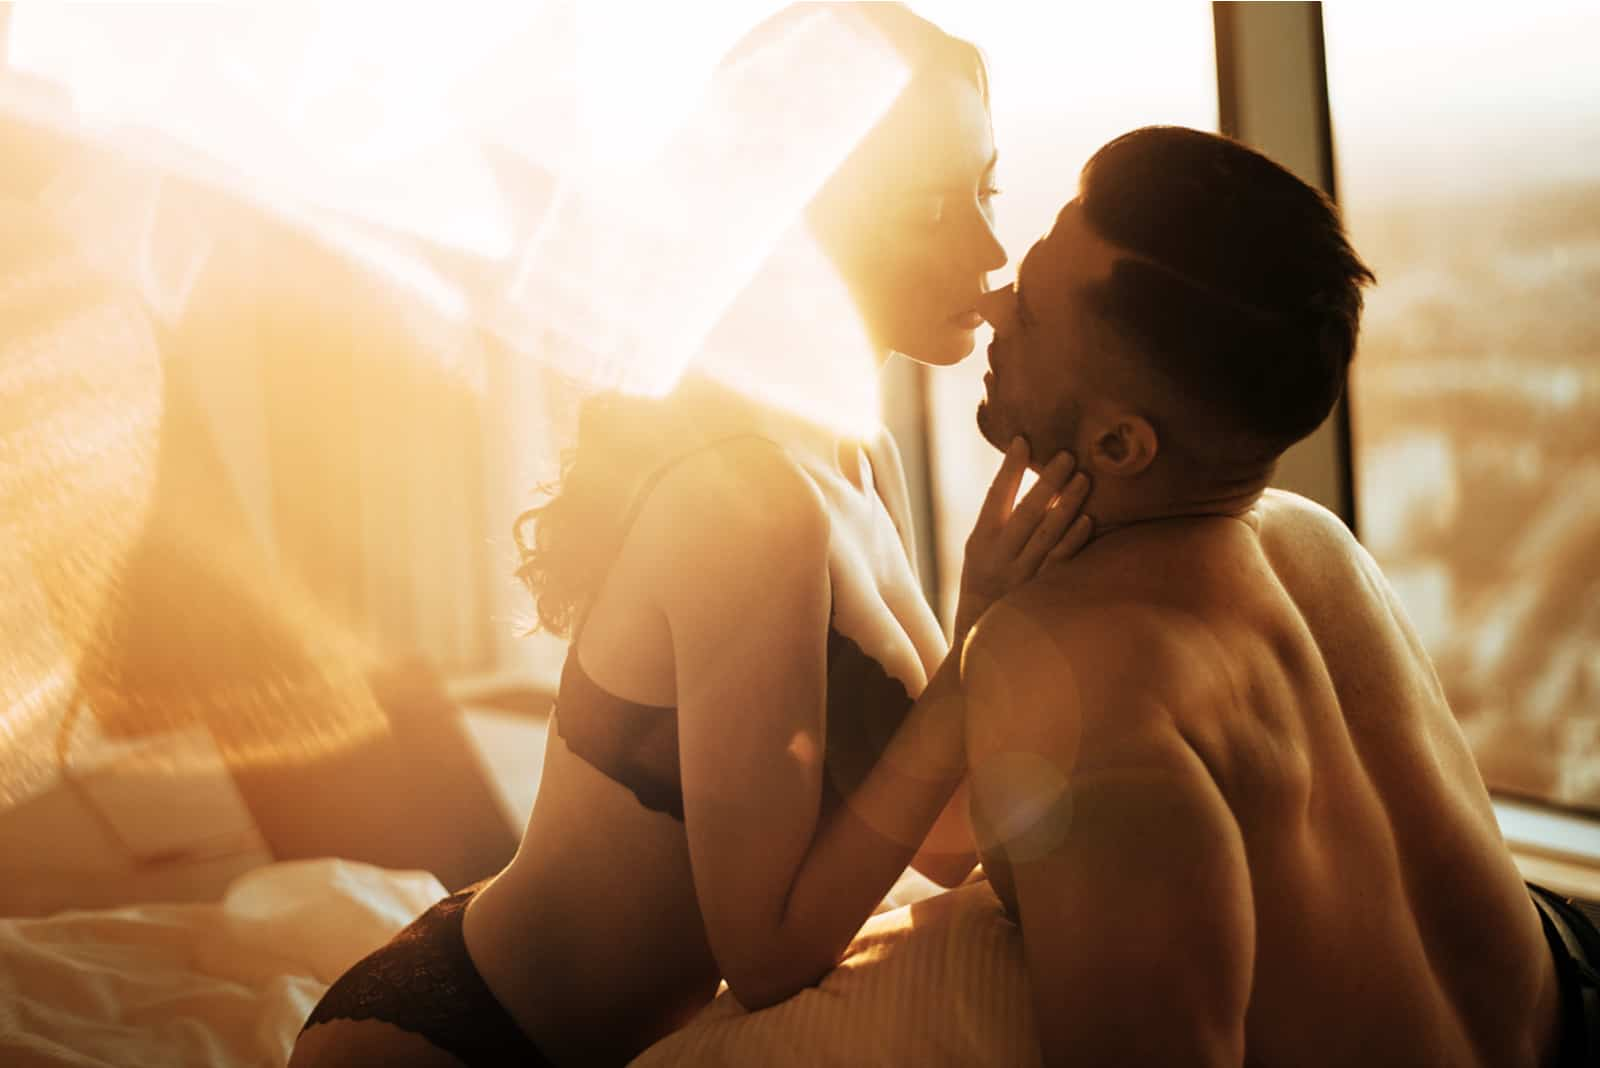 lovers make love in the room at sunset